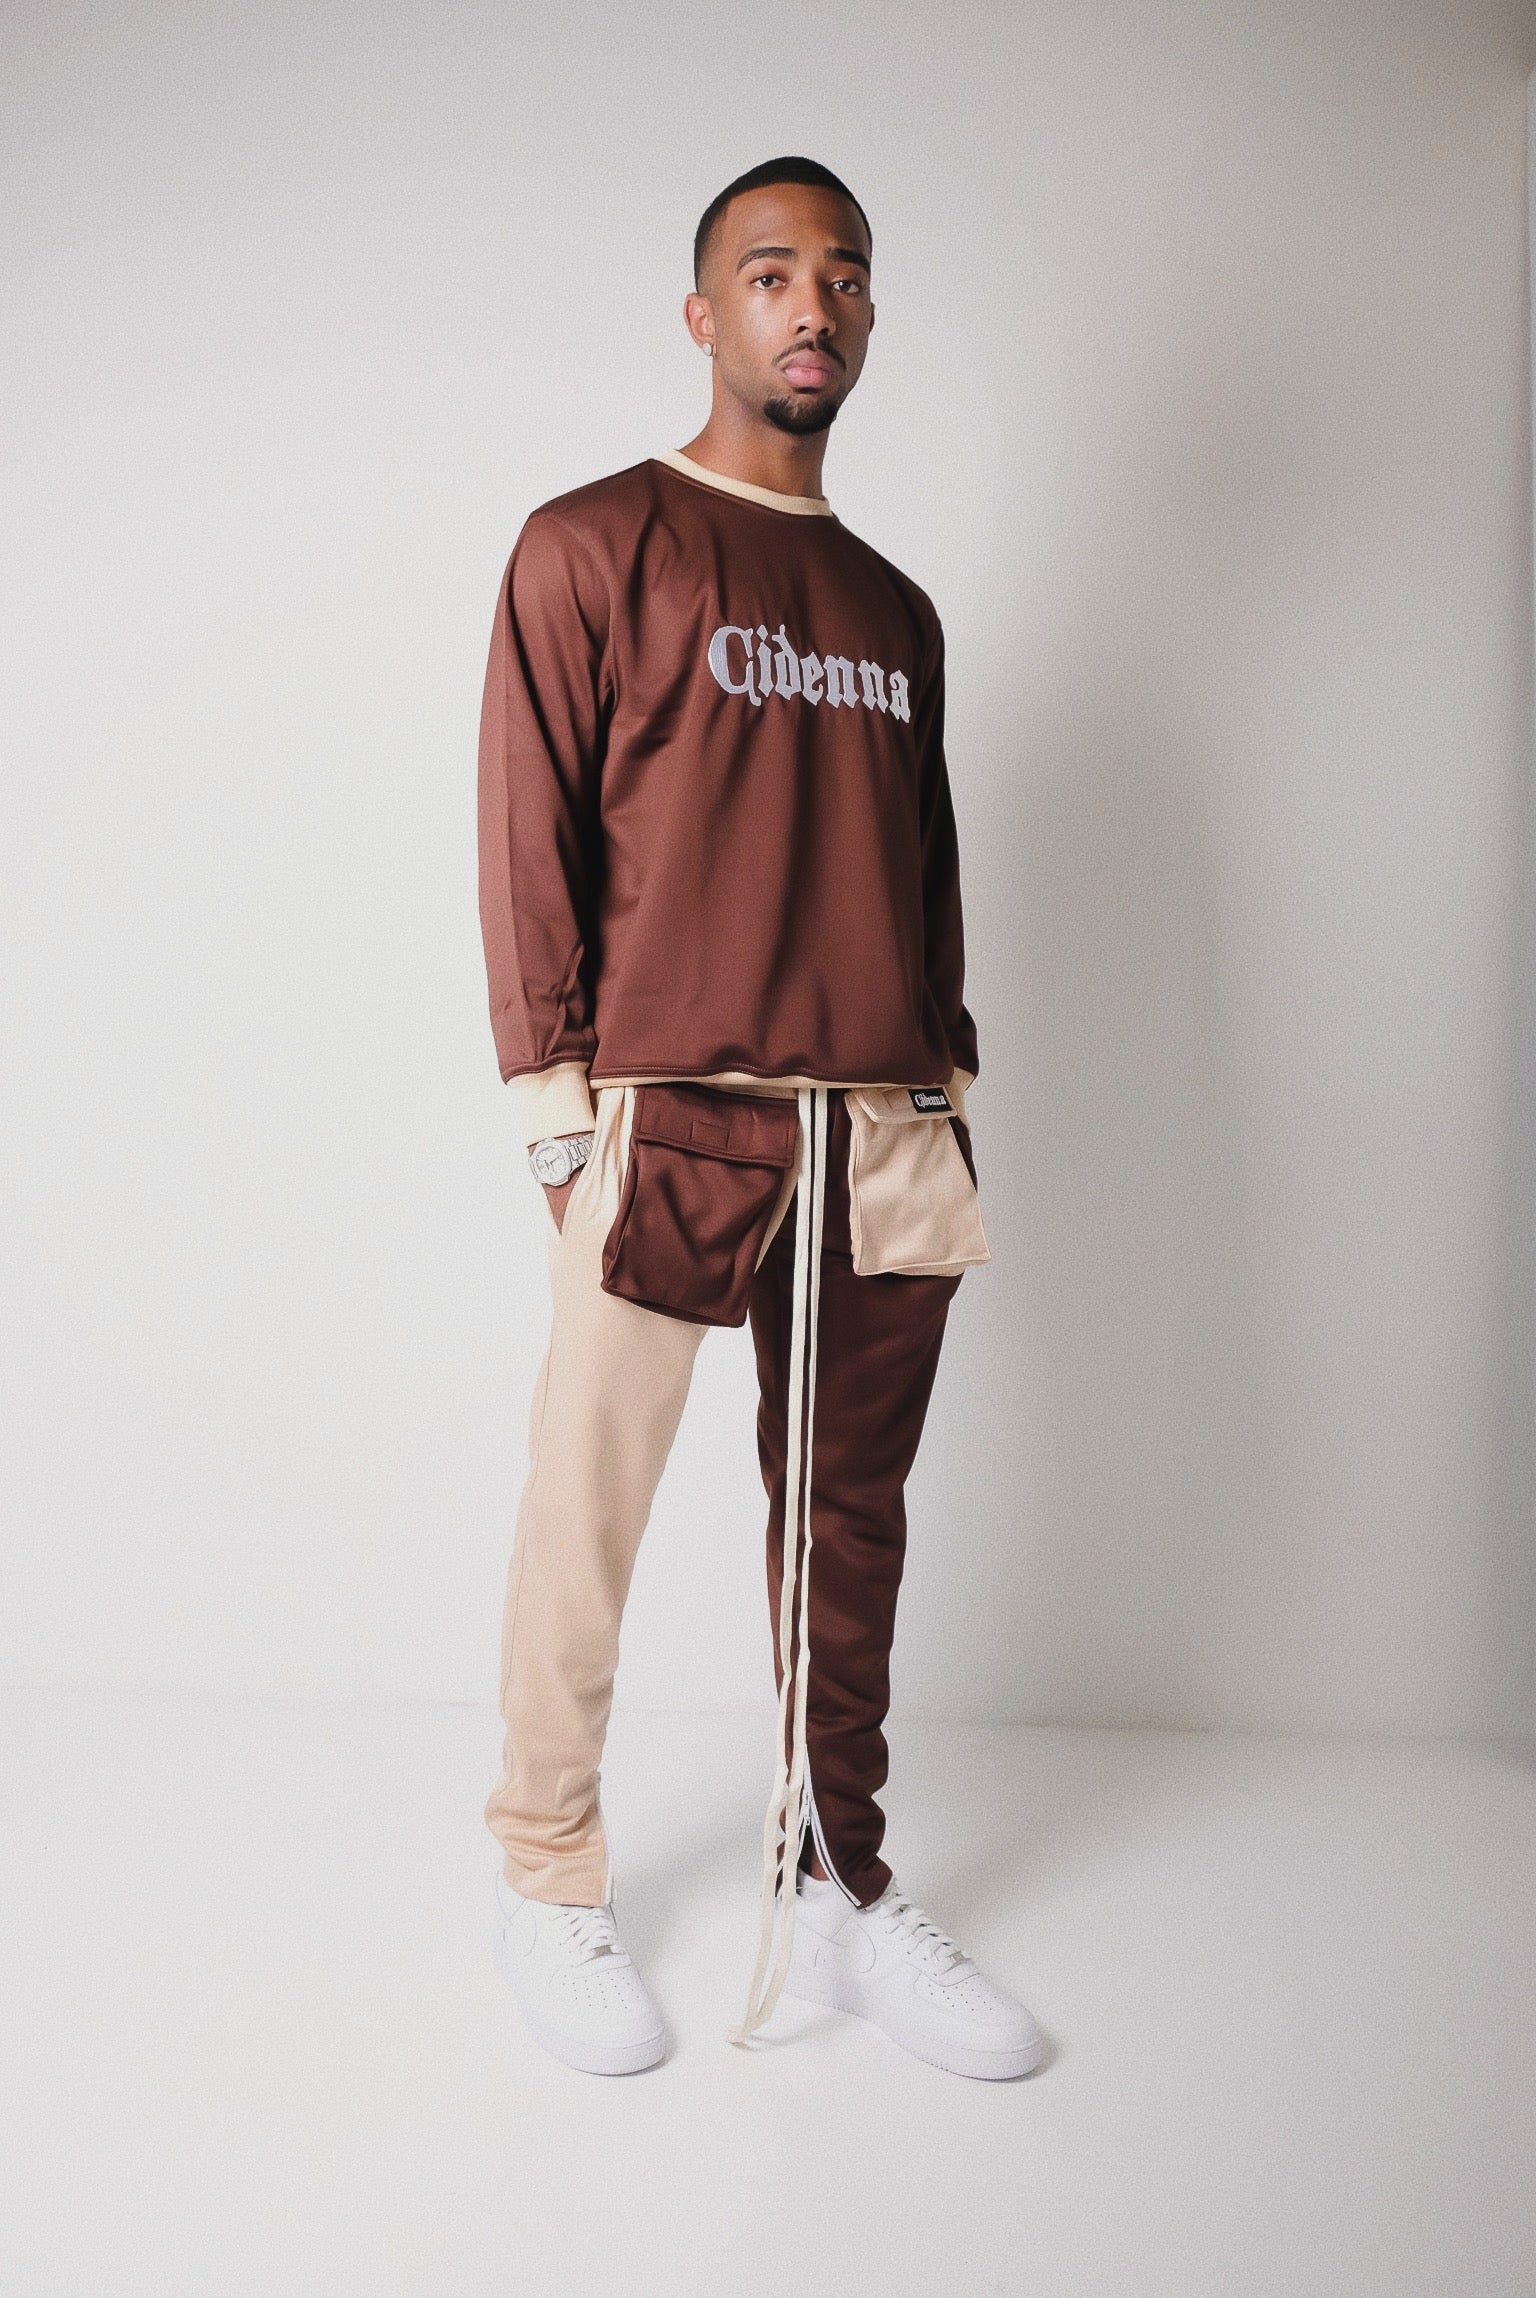 Amar model wearing Cidenna two tone cargo pants and two tone sweatshirt from cidenna two tone collection